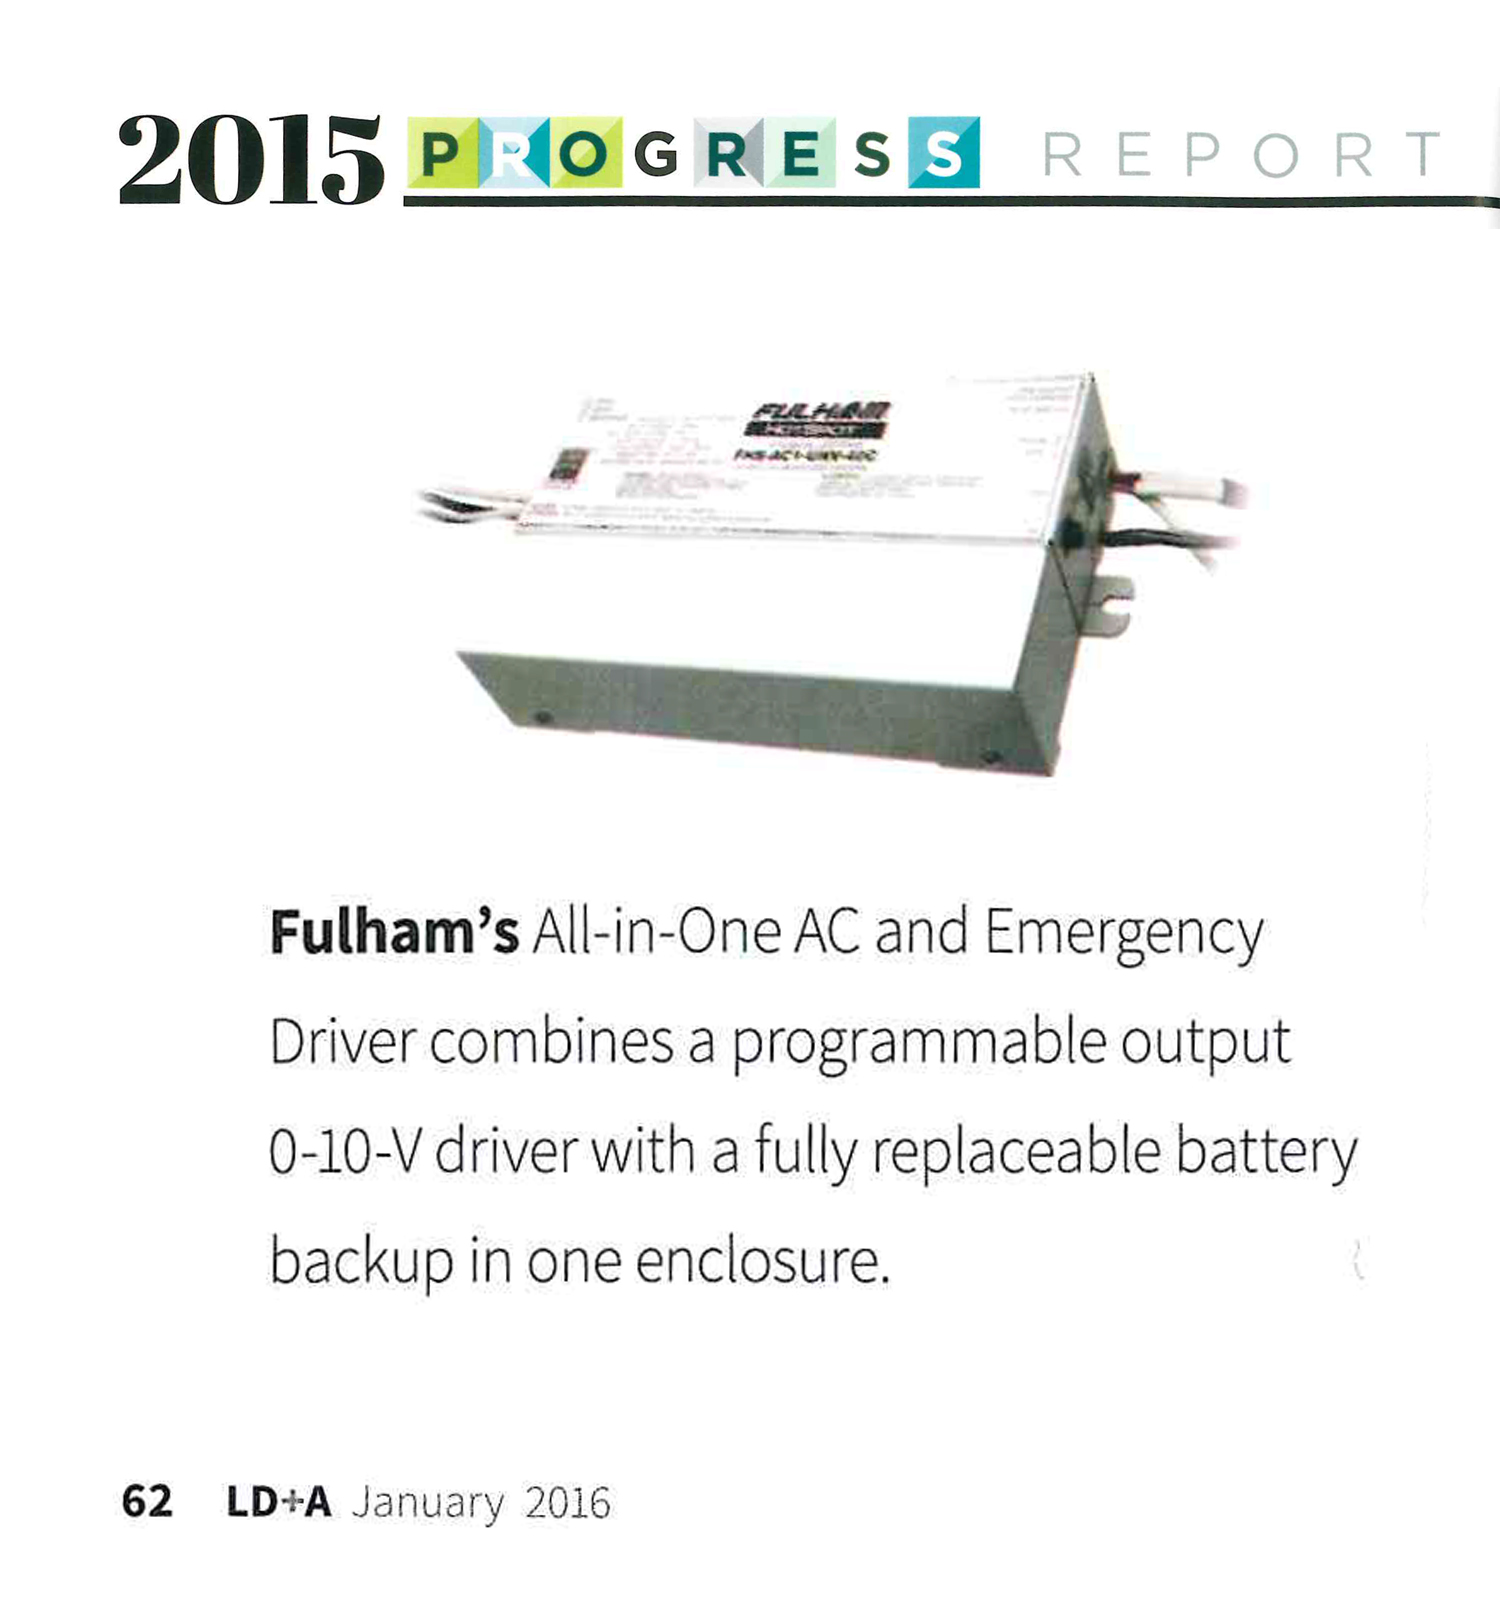 Fulham Lighting Global Clever Sustainable Press Coverage Emergency Led Ballast With Low Voltage Dimmer Wiring Jan 2016 Ld A Magazine 2015 Ies Progress Report All In One Driver System